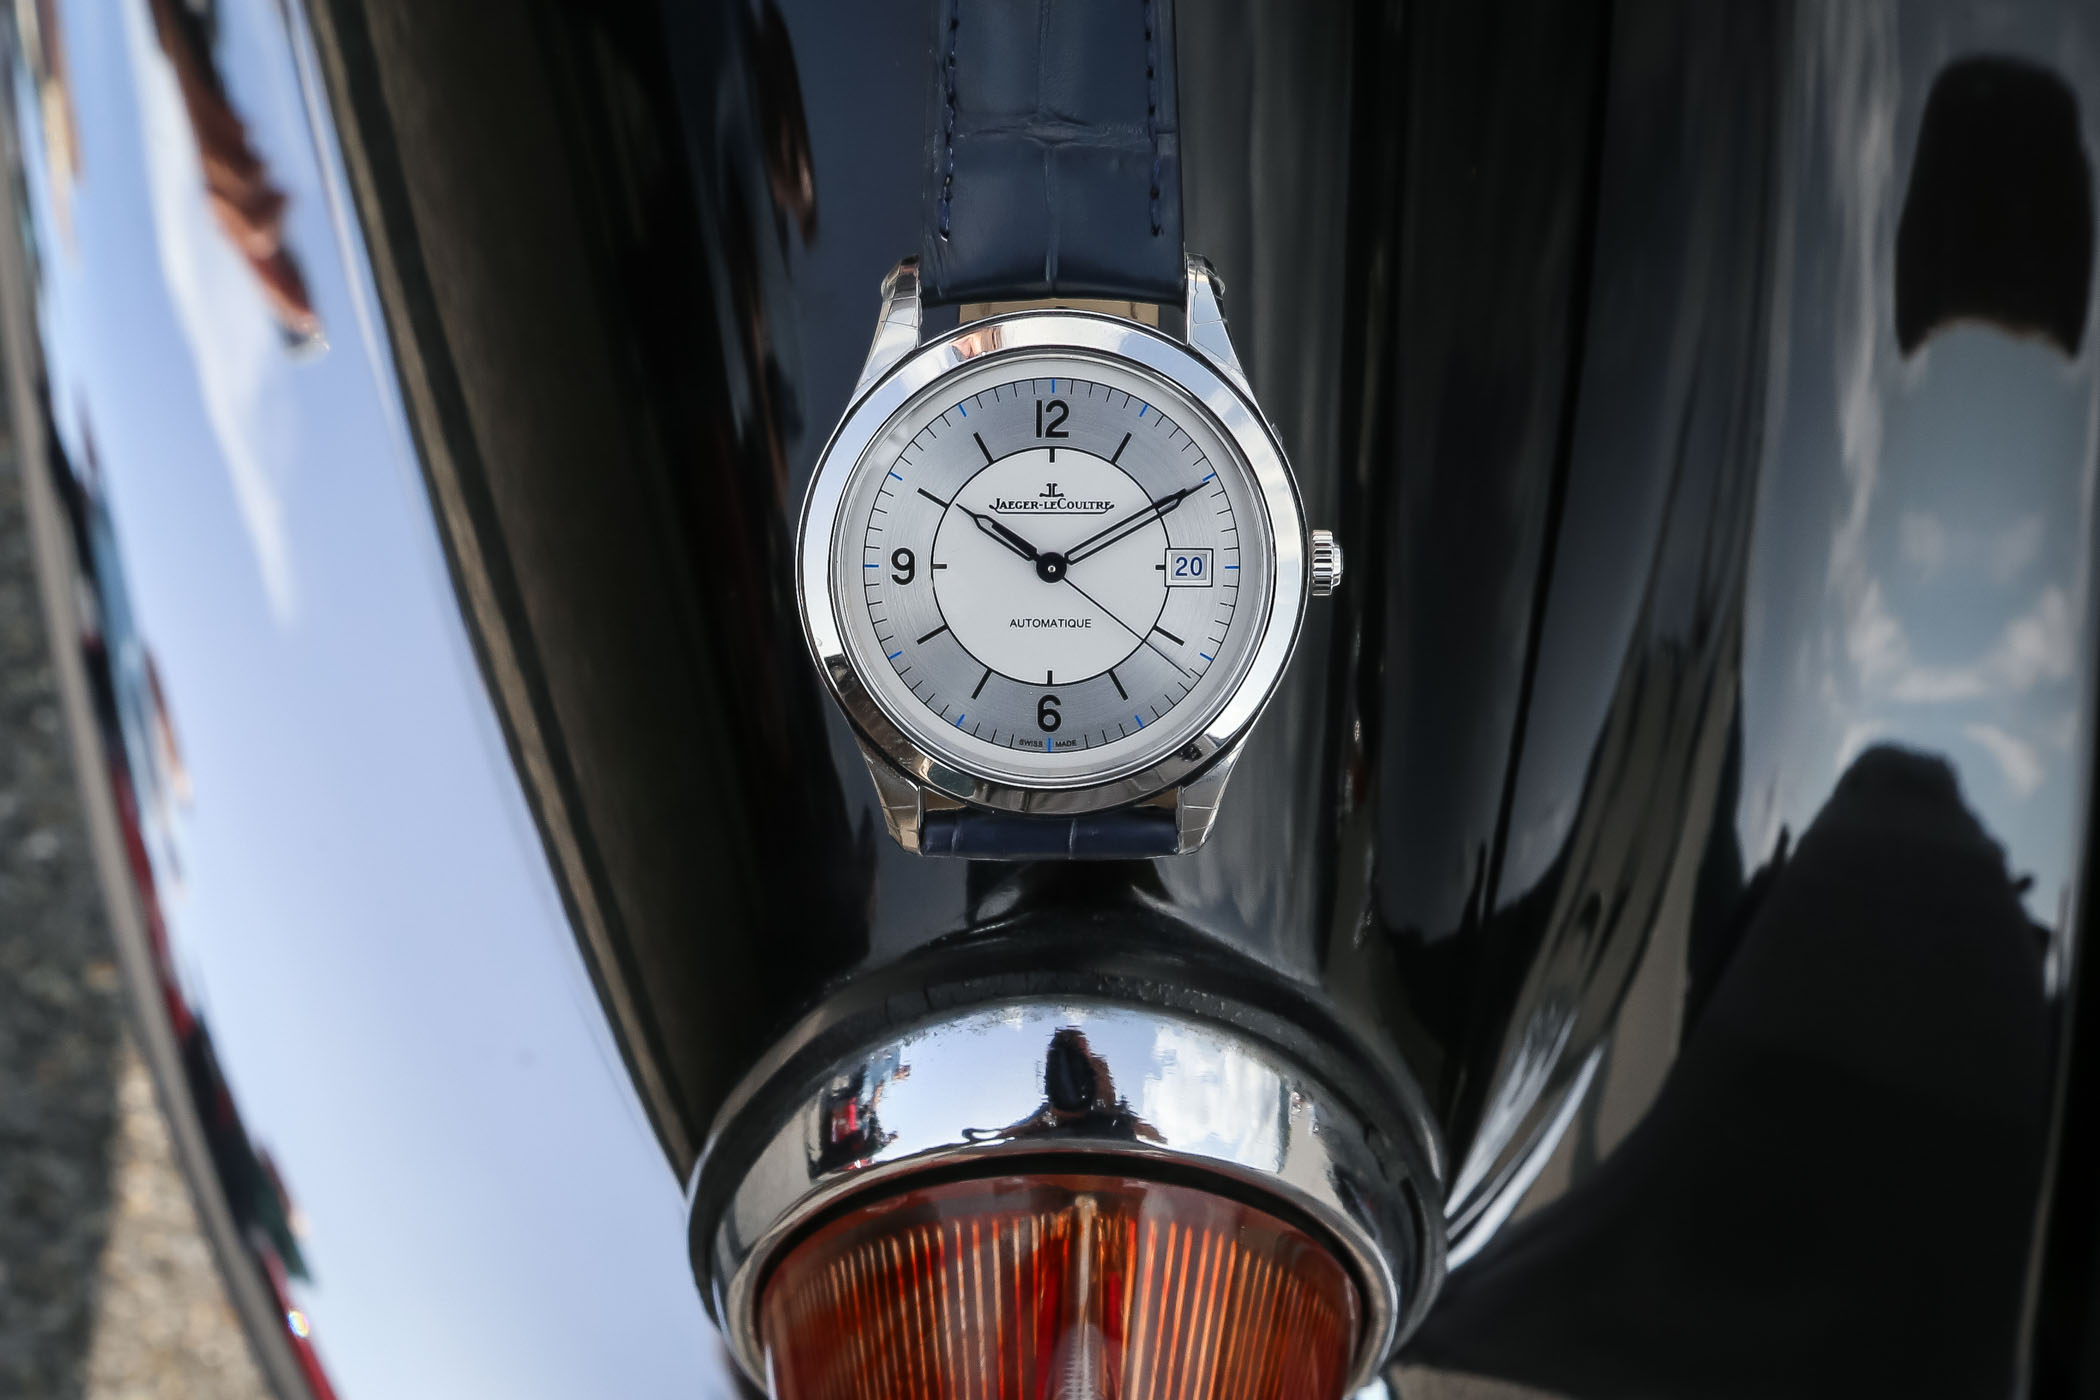 jaeger lecoultre x passione engadina - event report - photo by Guillaume Cassez